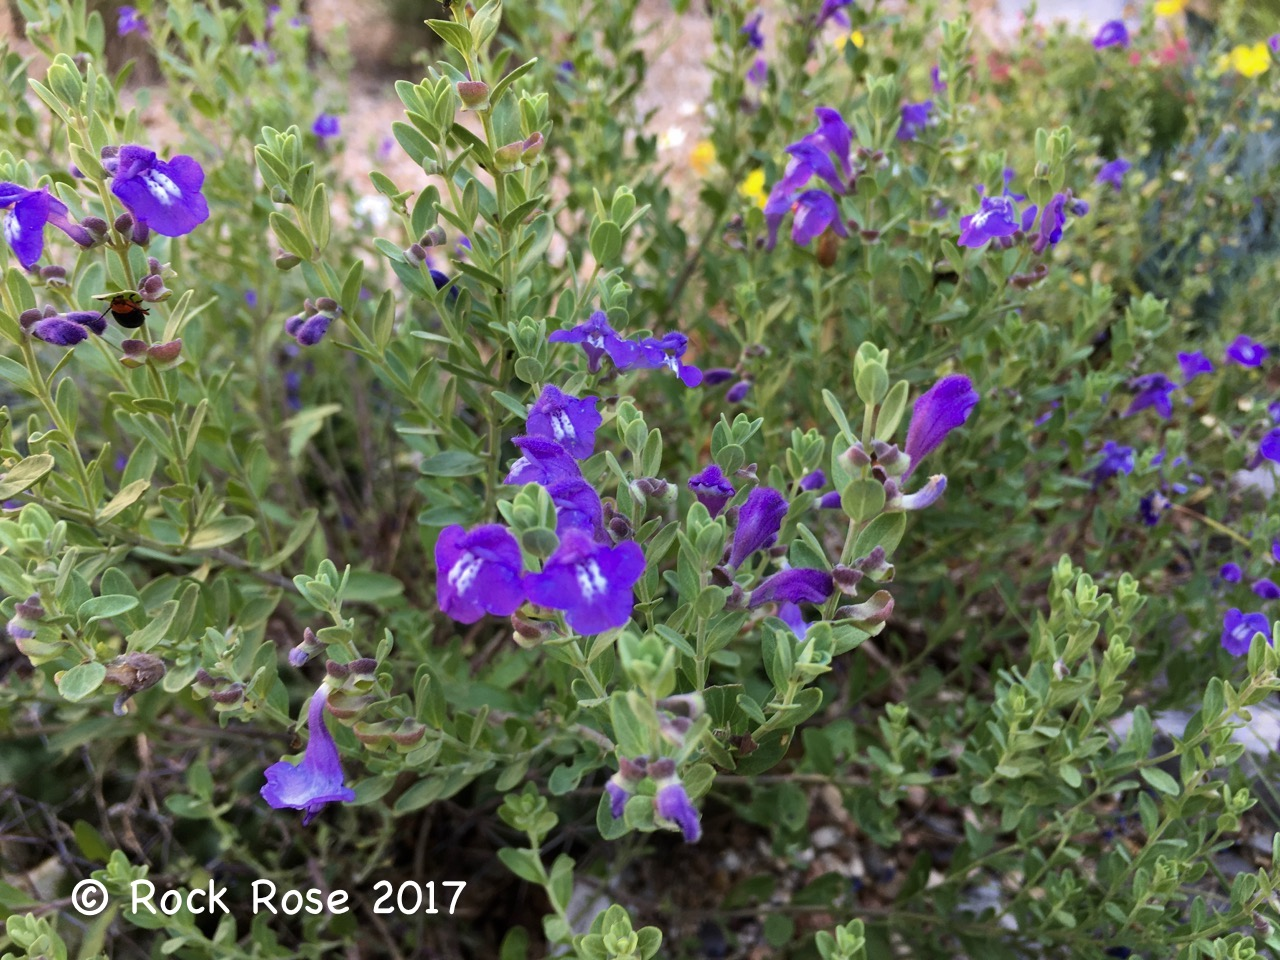 rock rose: garden bloggers' bloom day, may 2017